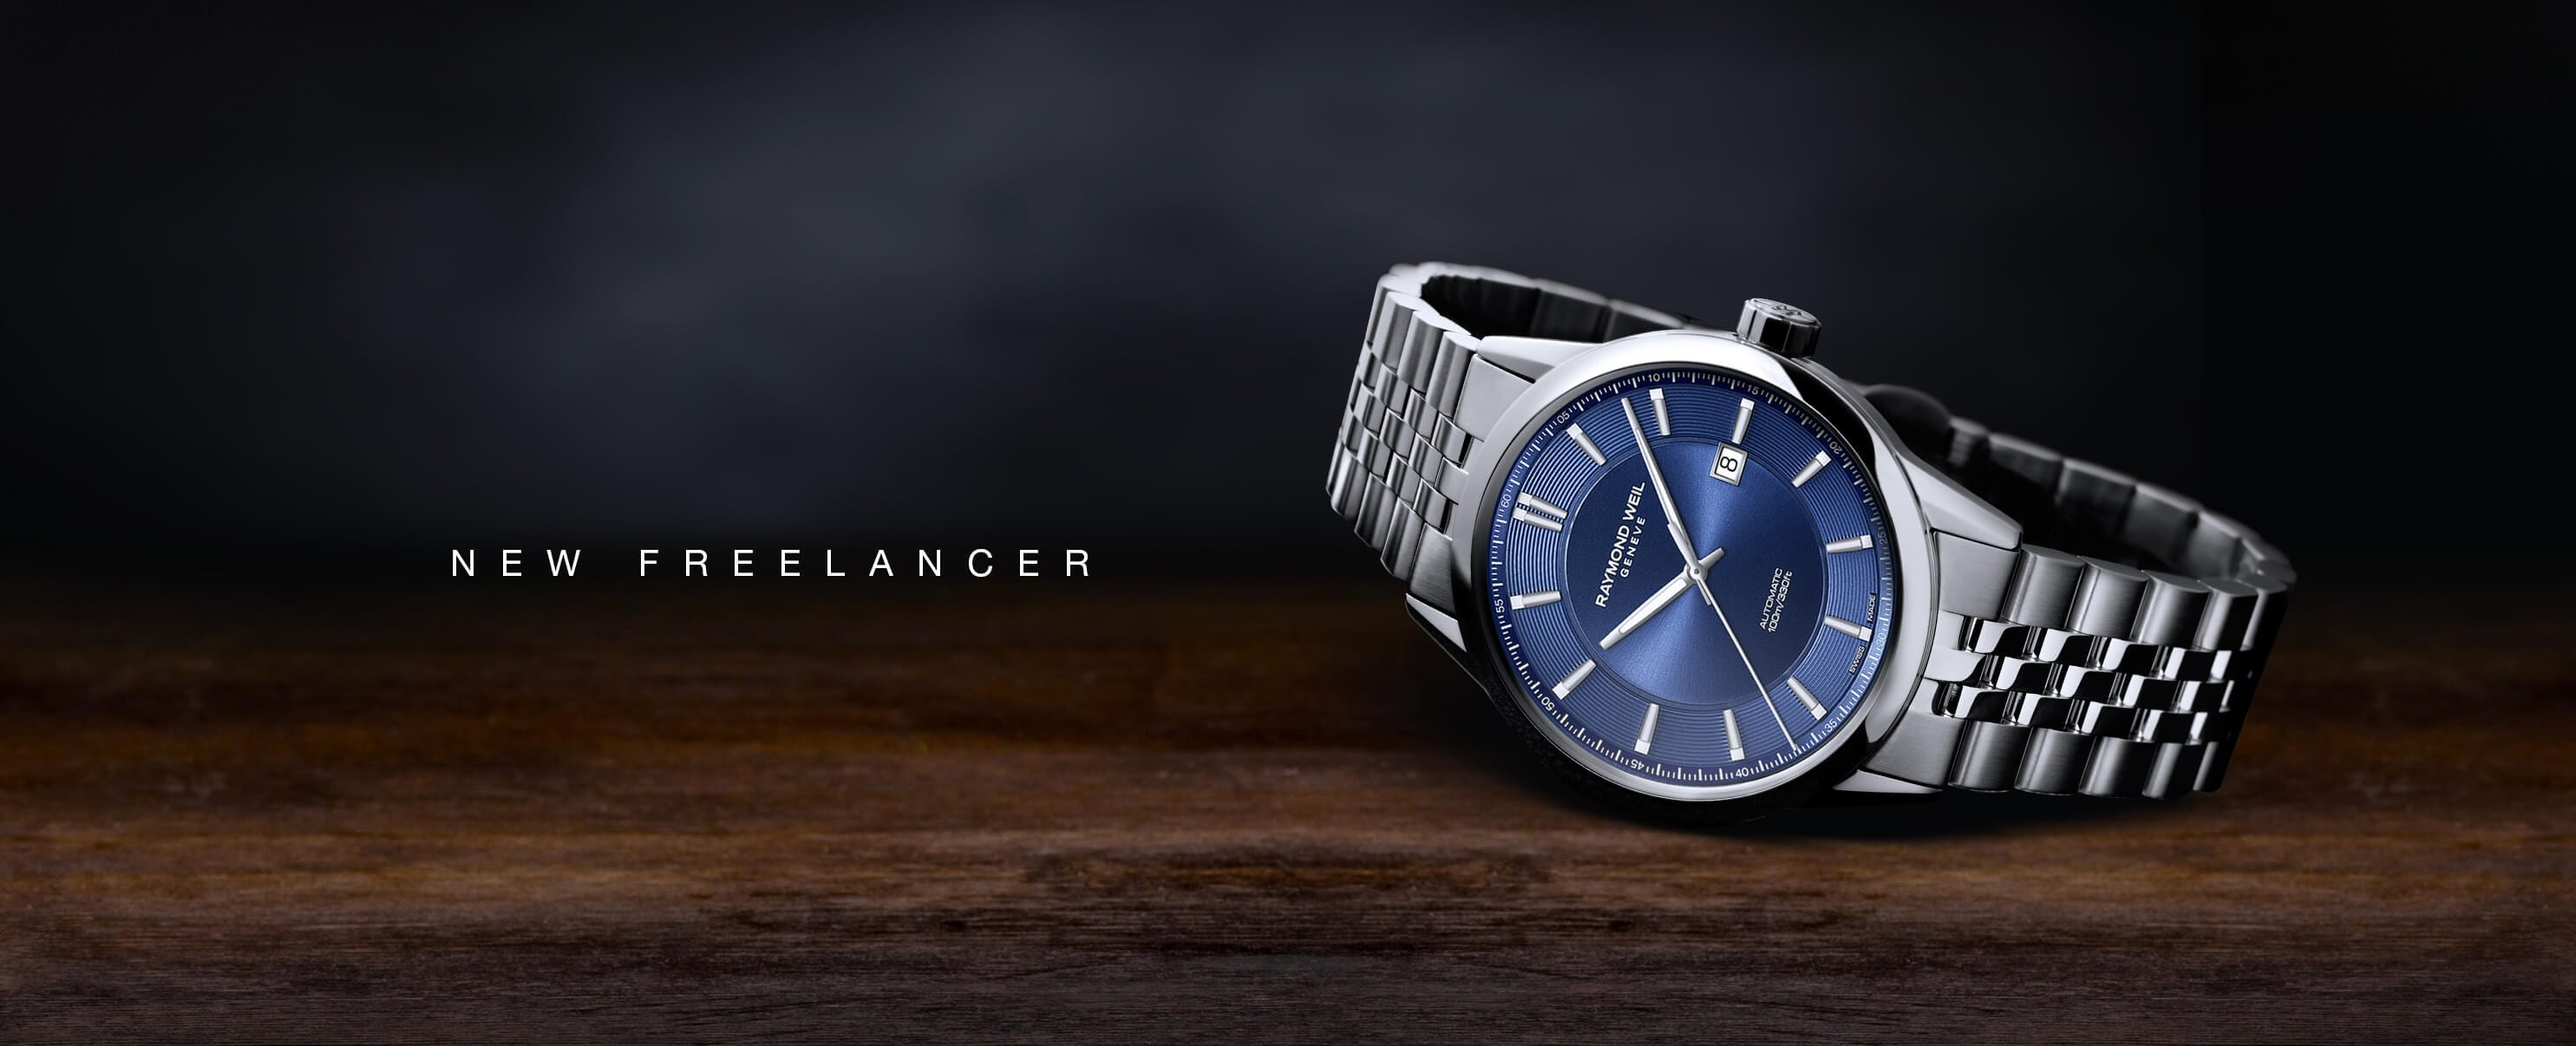 2731 freelancer blue automatic date watch stainless steel